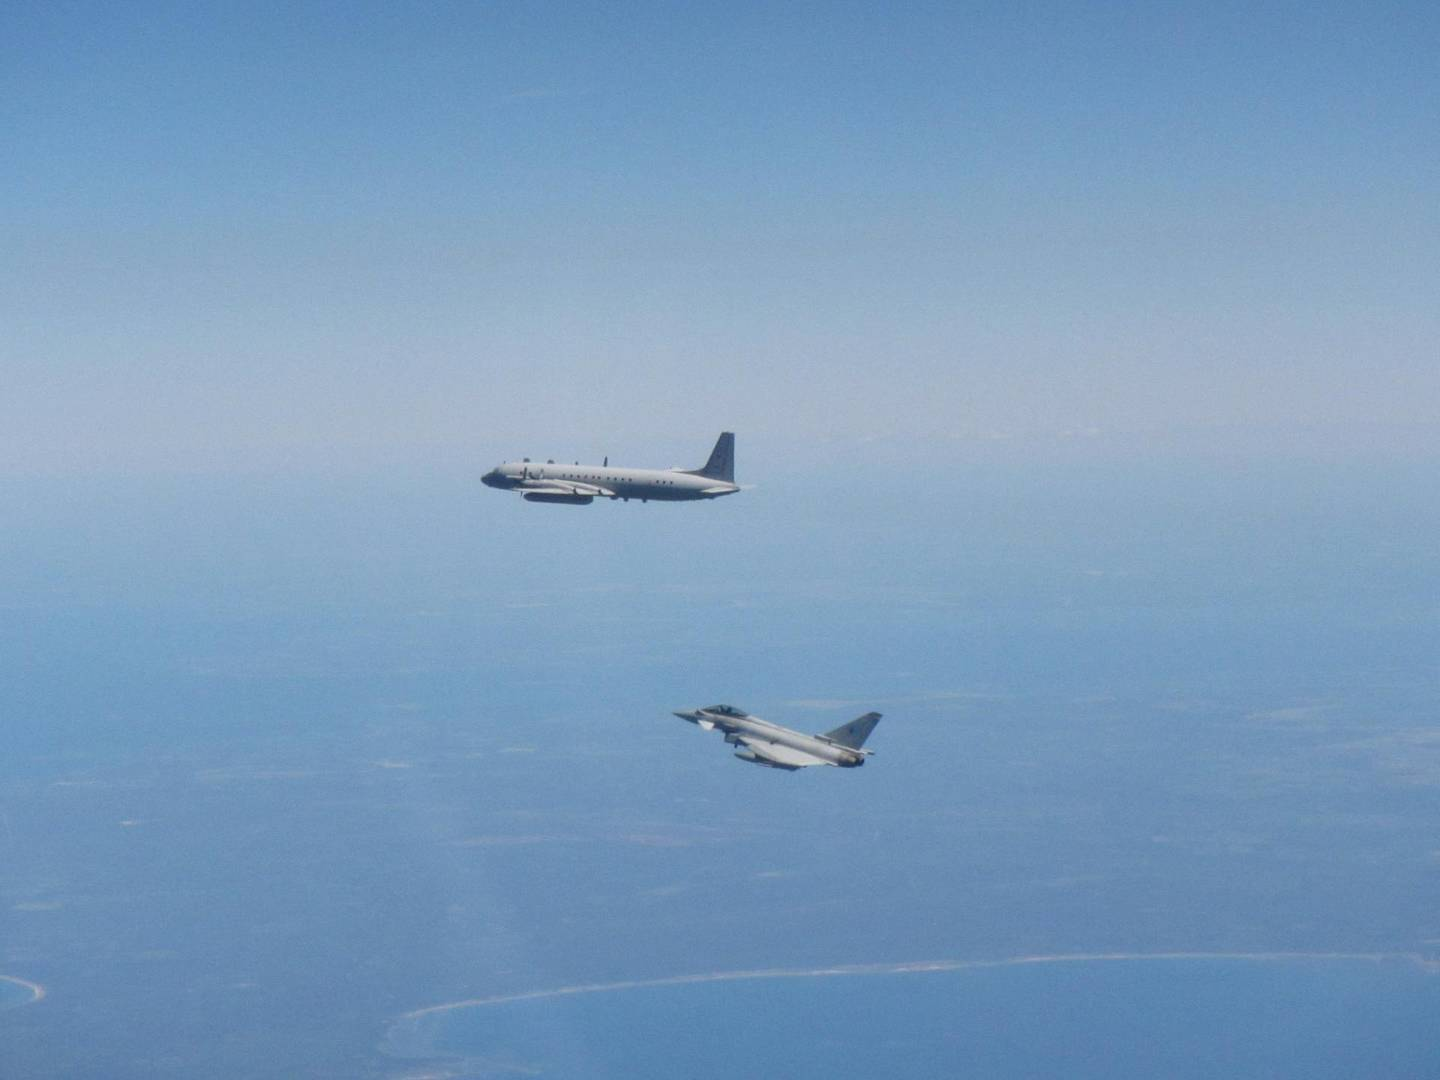 epa08461212 A handout picture provided by the British Royal Air Force shows a Russian Coot A aircraft (top) being intercepted by RAF Typhoons from Siauliai Air Base, over Lithuania, 02 June 2020. According to the RAF, jets of the NATO Baltic Air Policing mission intercepted a Russian aircraft.  EPA/Iain Curlett / BRITISH MINISTRY OF DEFENCE HANDOUT MANDATORY CREDIT: MOD/CROWN COPYRIGHT HANDOUT EDITORIAL USE ONLY/NO SALES